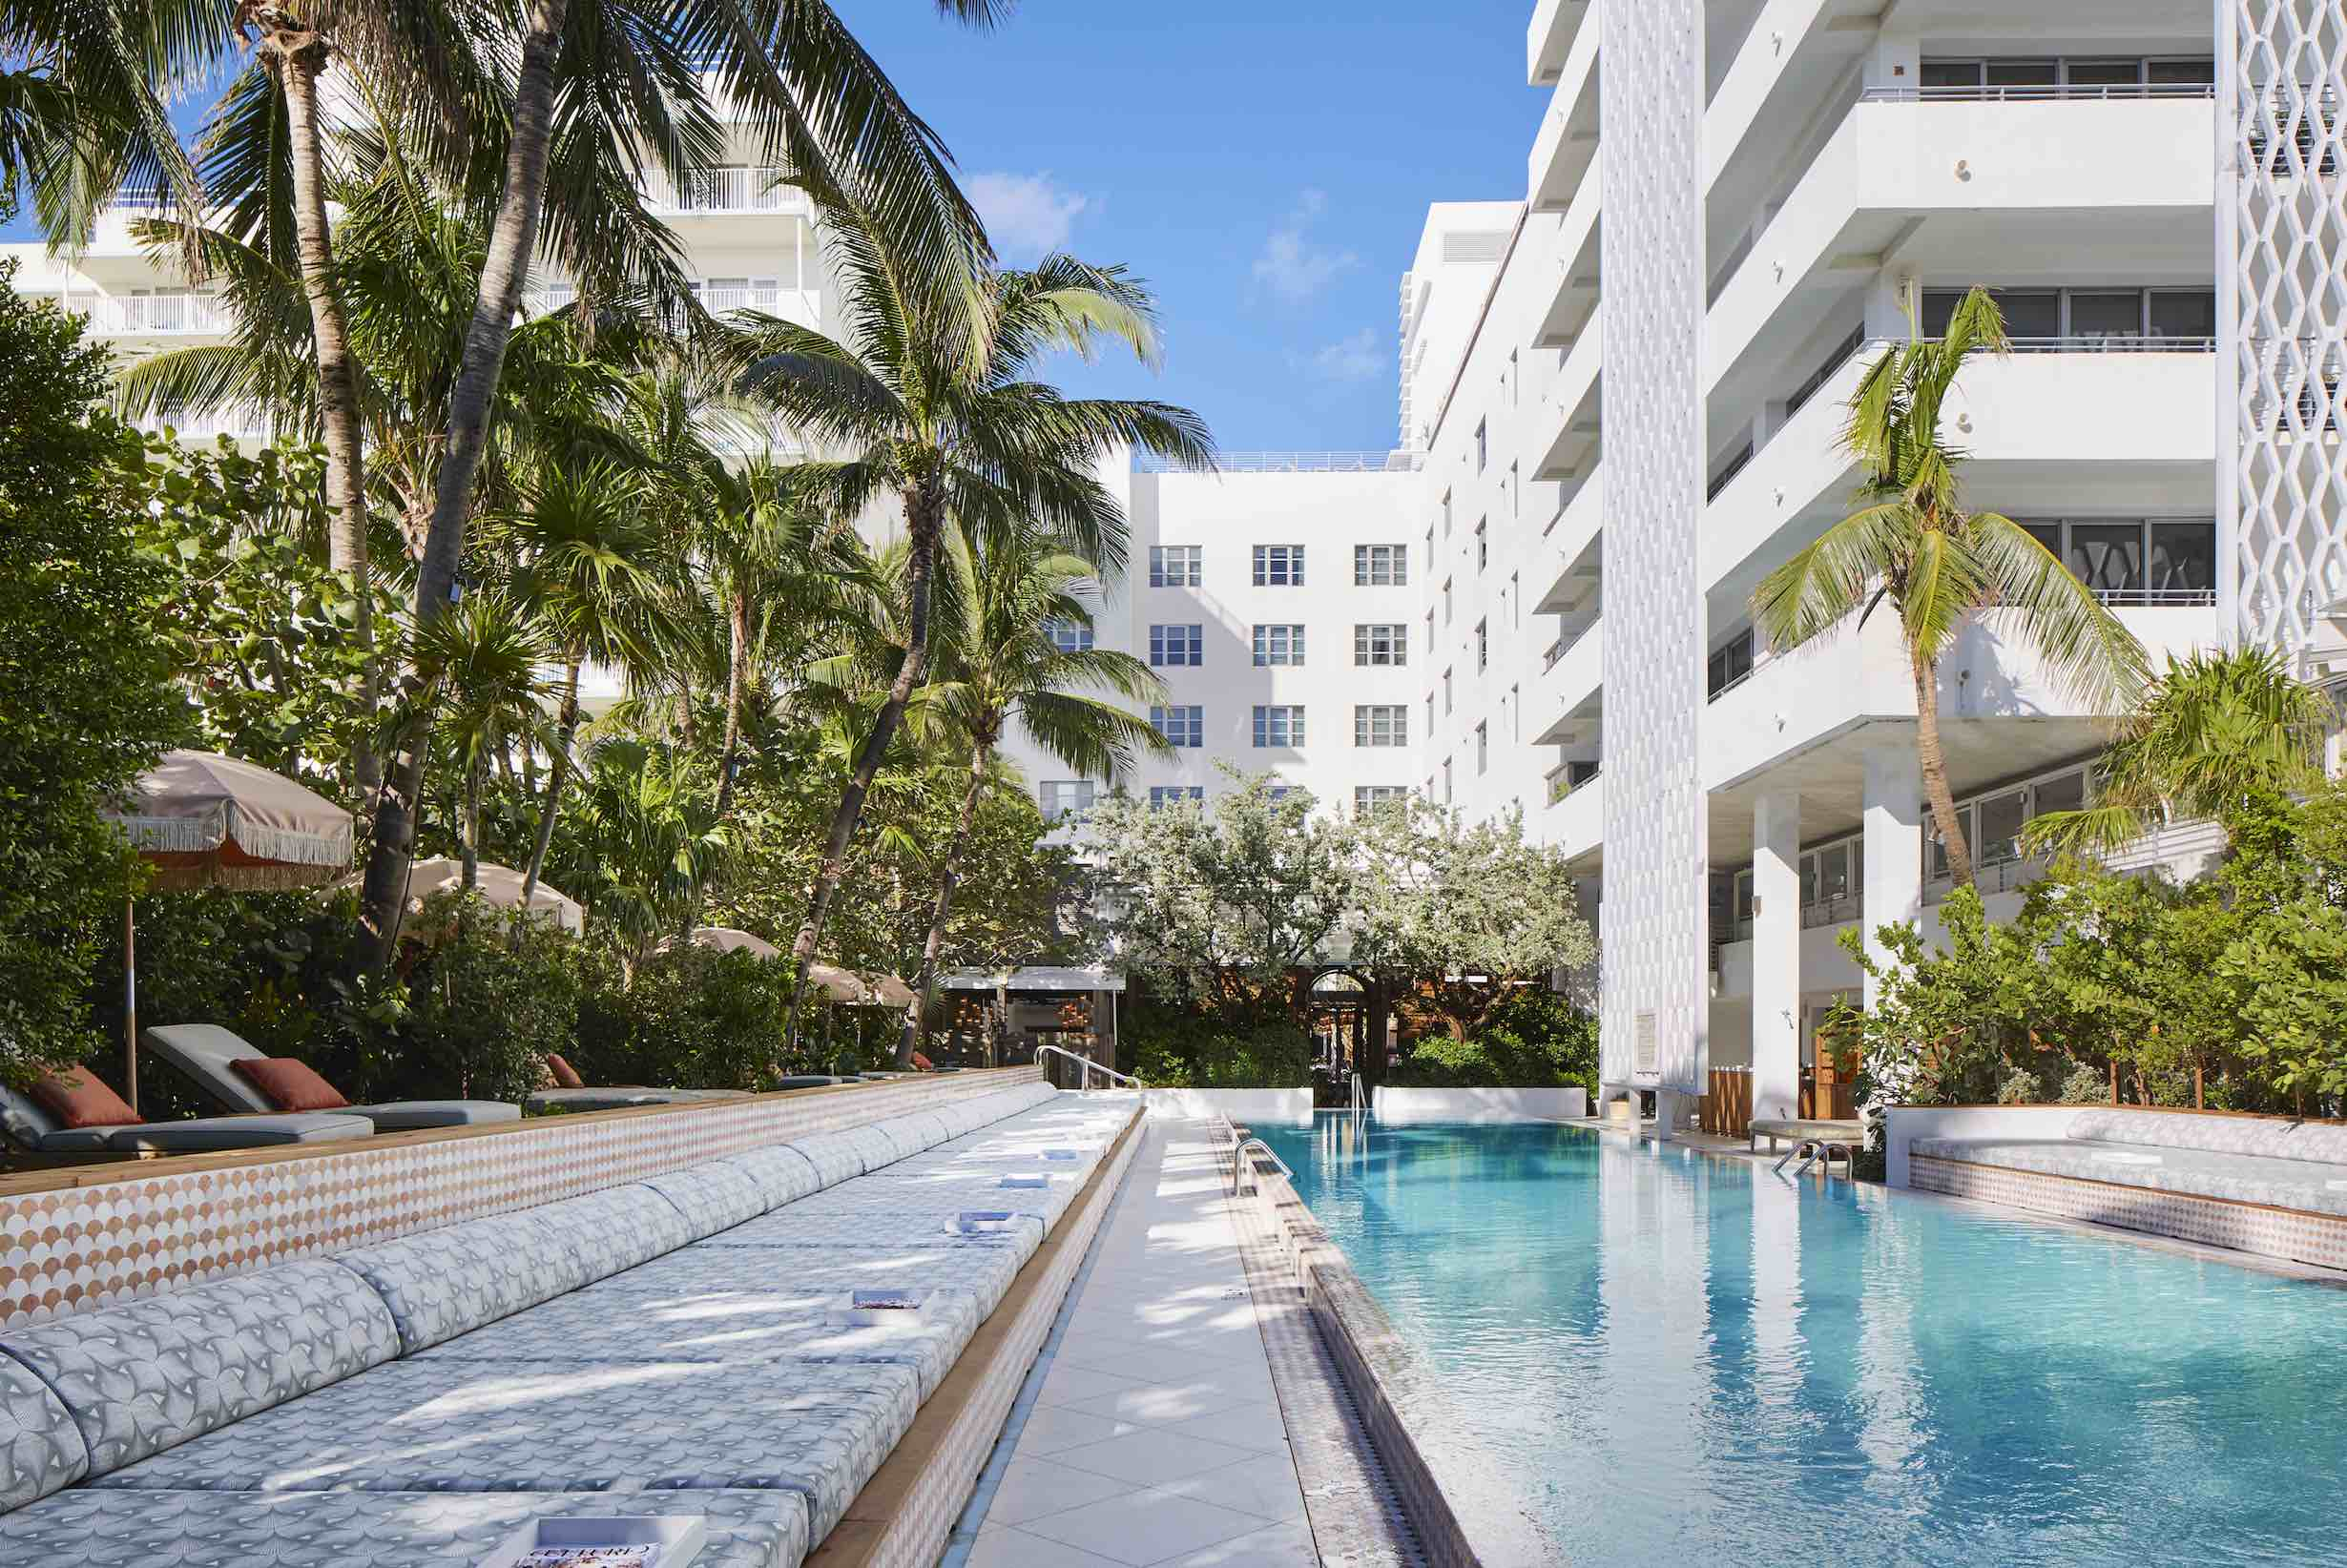 Miami At These Haute Poolside Destinations